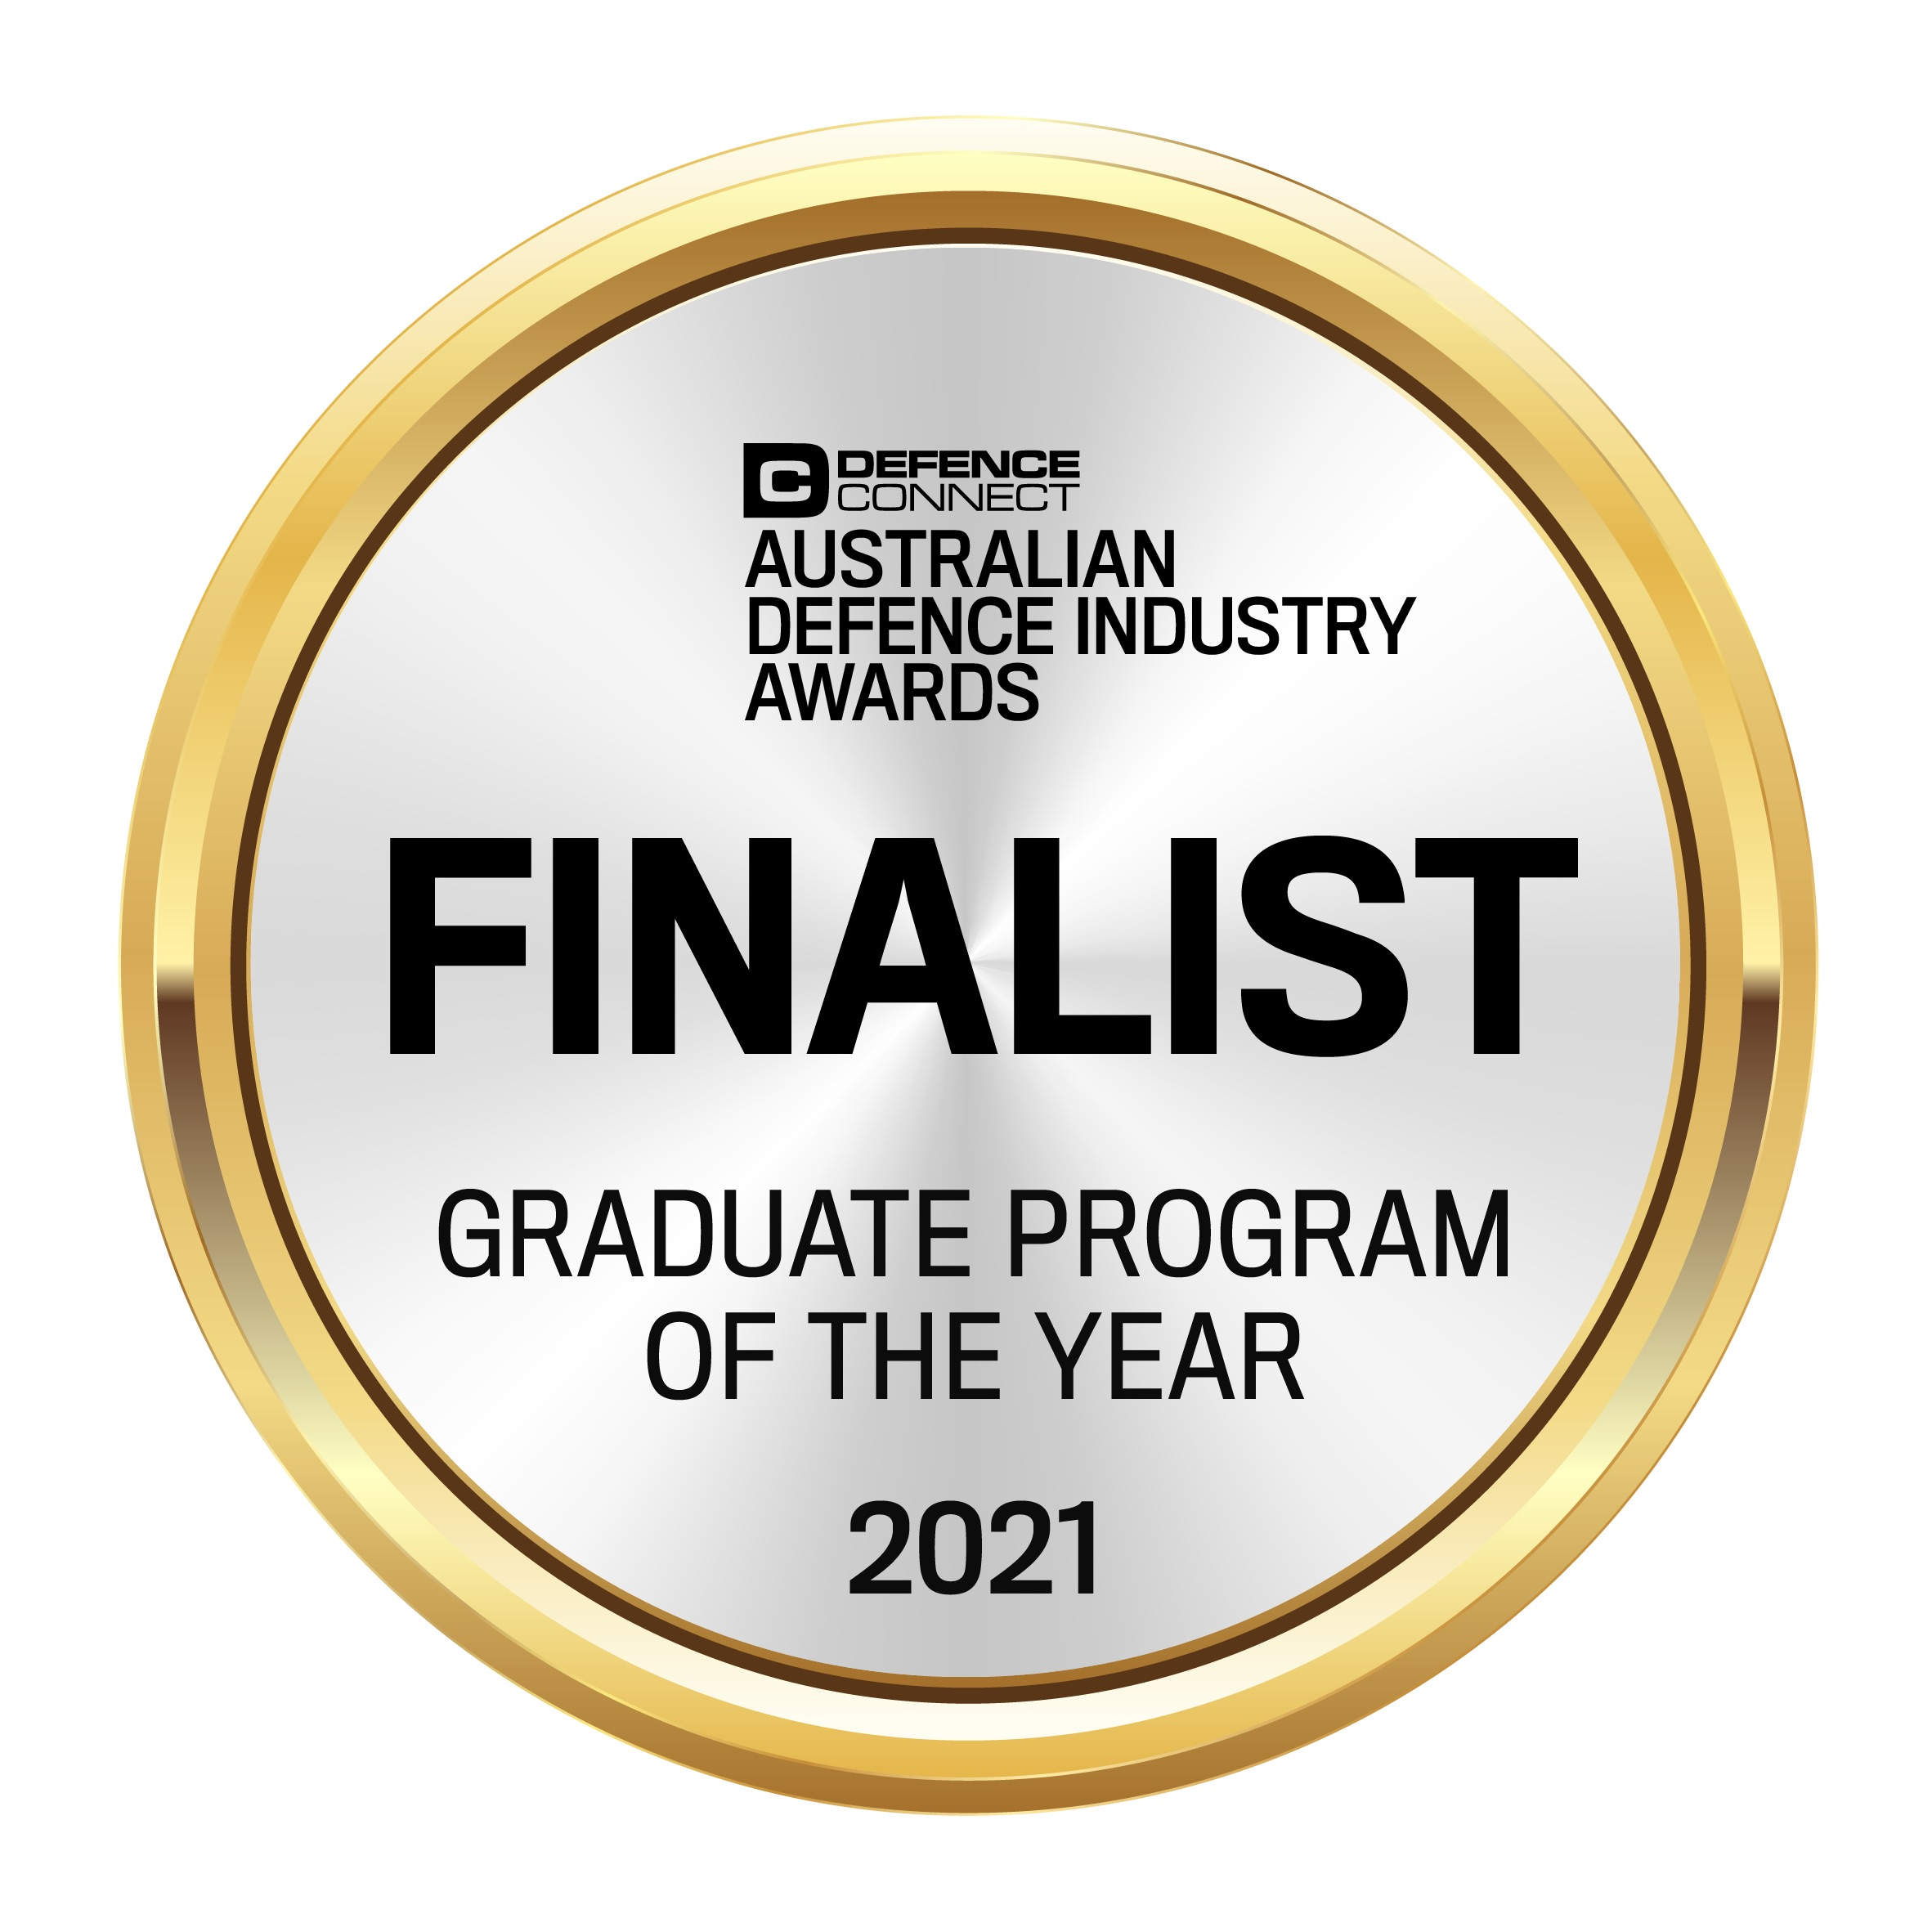 APR.Intern Announced as a Finalist in the Australian Defence Industry Awards